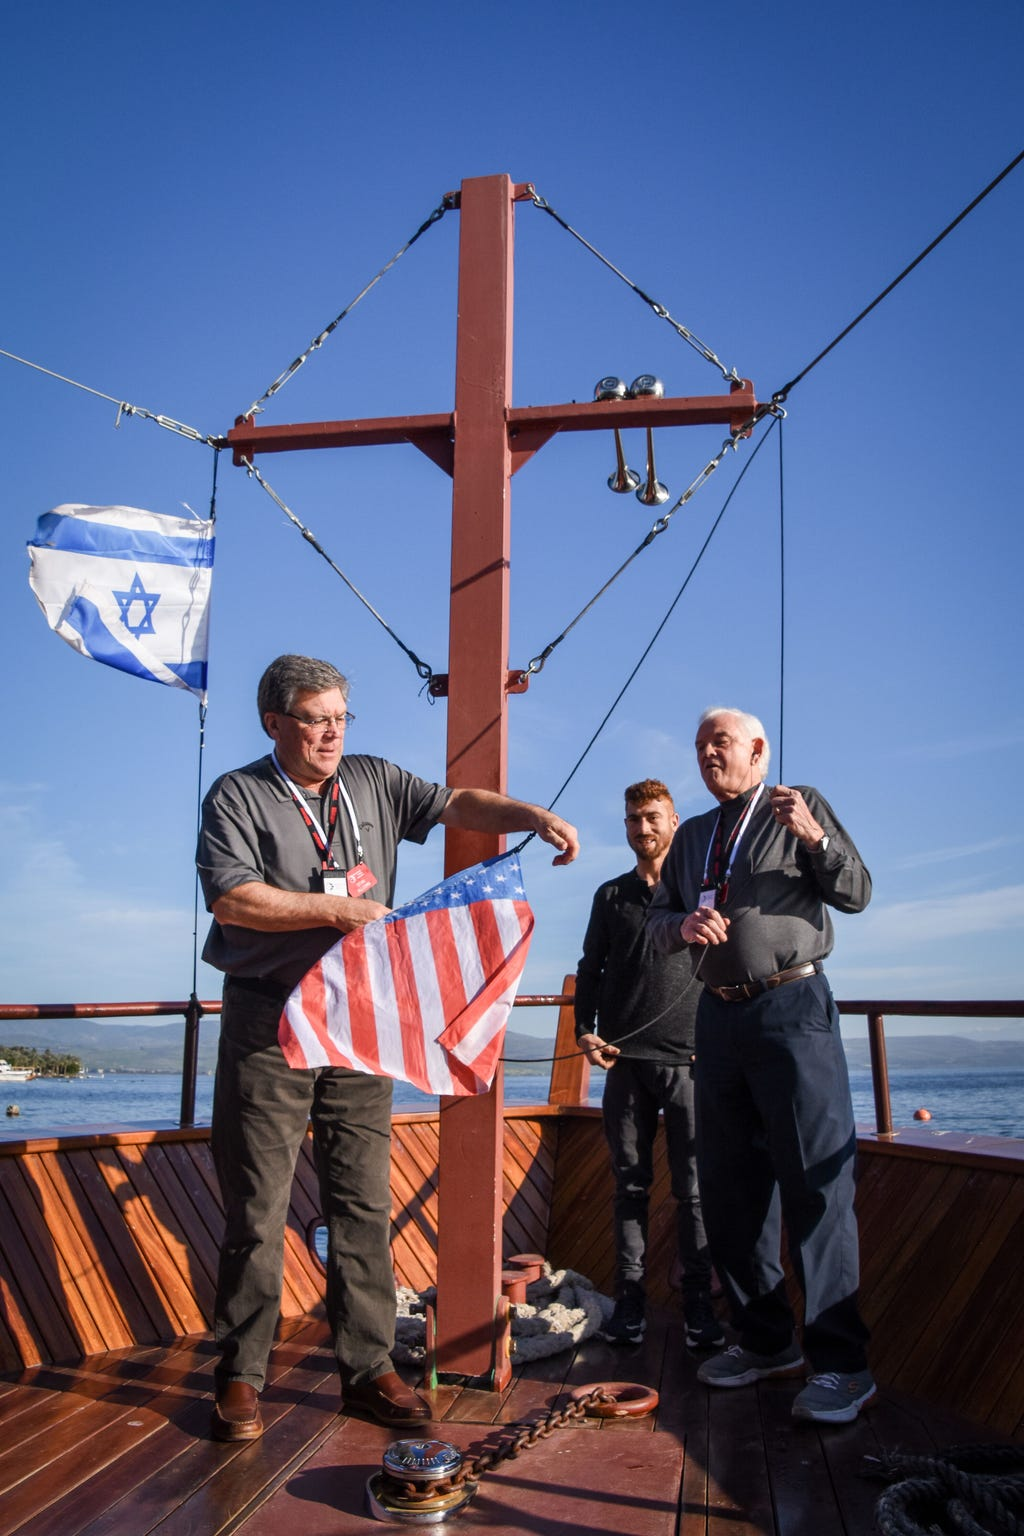 Stan Allcorn, left, and Russell Berry raise a U.S. flag on a boat on the Sea of Galilee in March.